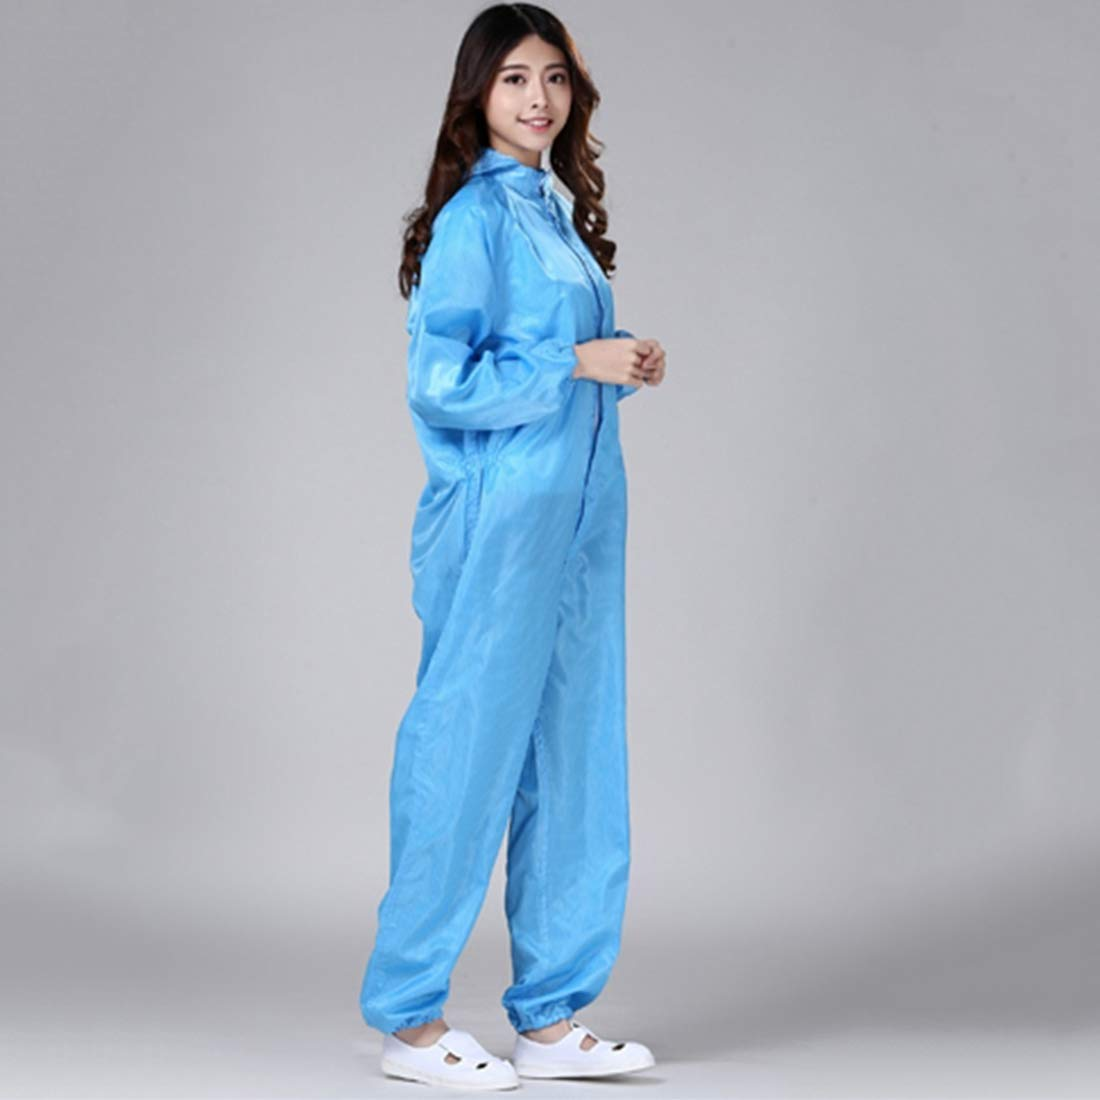 Jubang Surgical Gowns Isolation Gowns Long Sleeves High Temperature Resistance with Hood Protective Suit Nurse Uniform Anti-Static Jumpsuit Workwear for Chemicals Hospital Blue 2XL